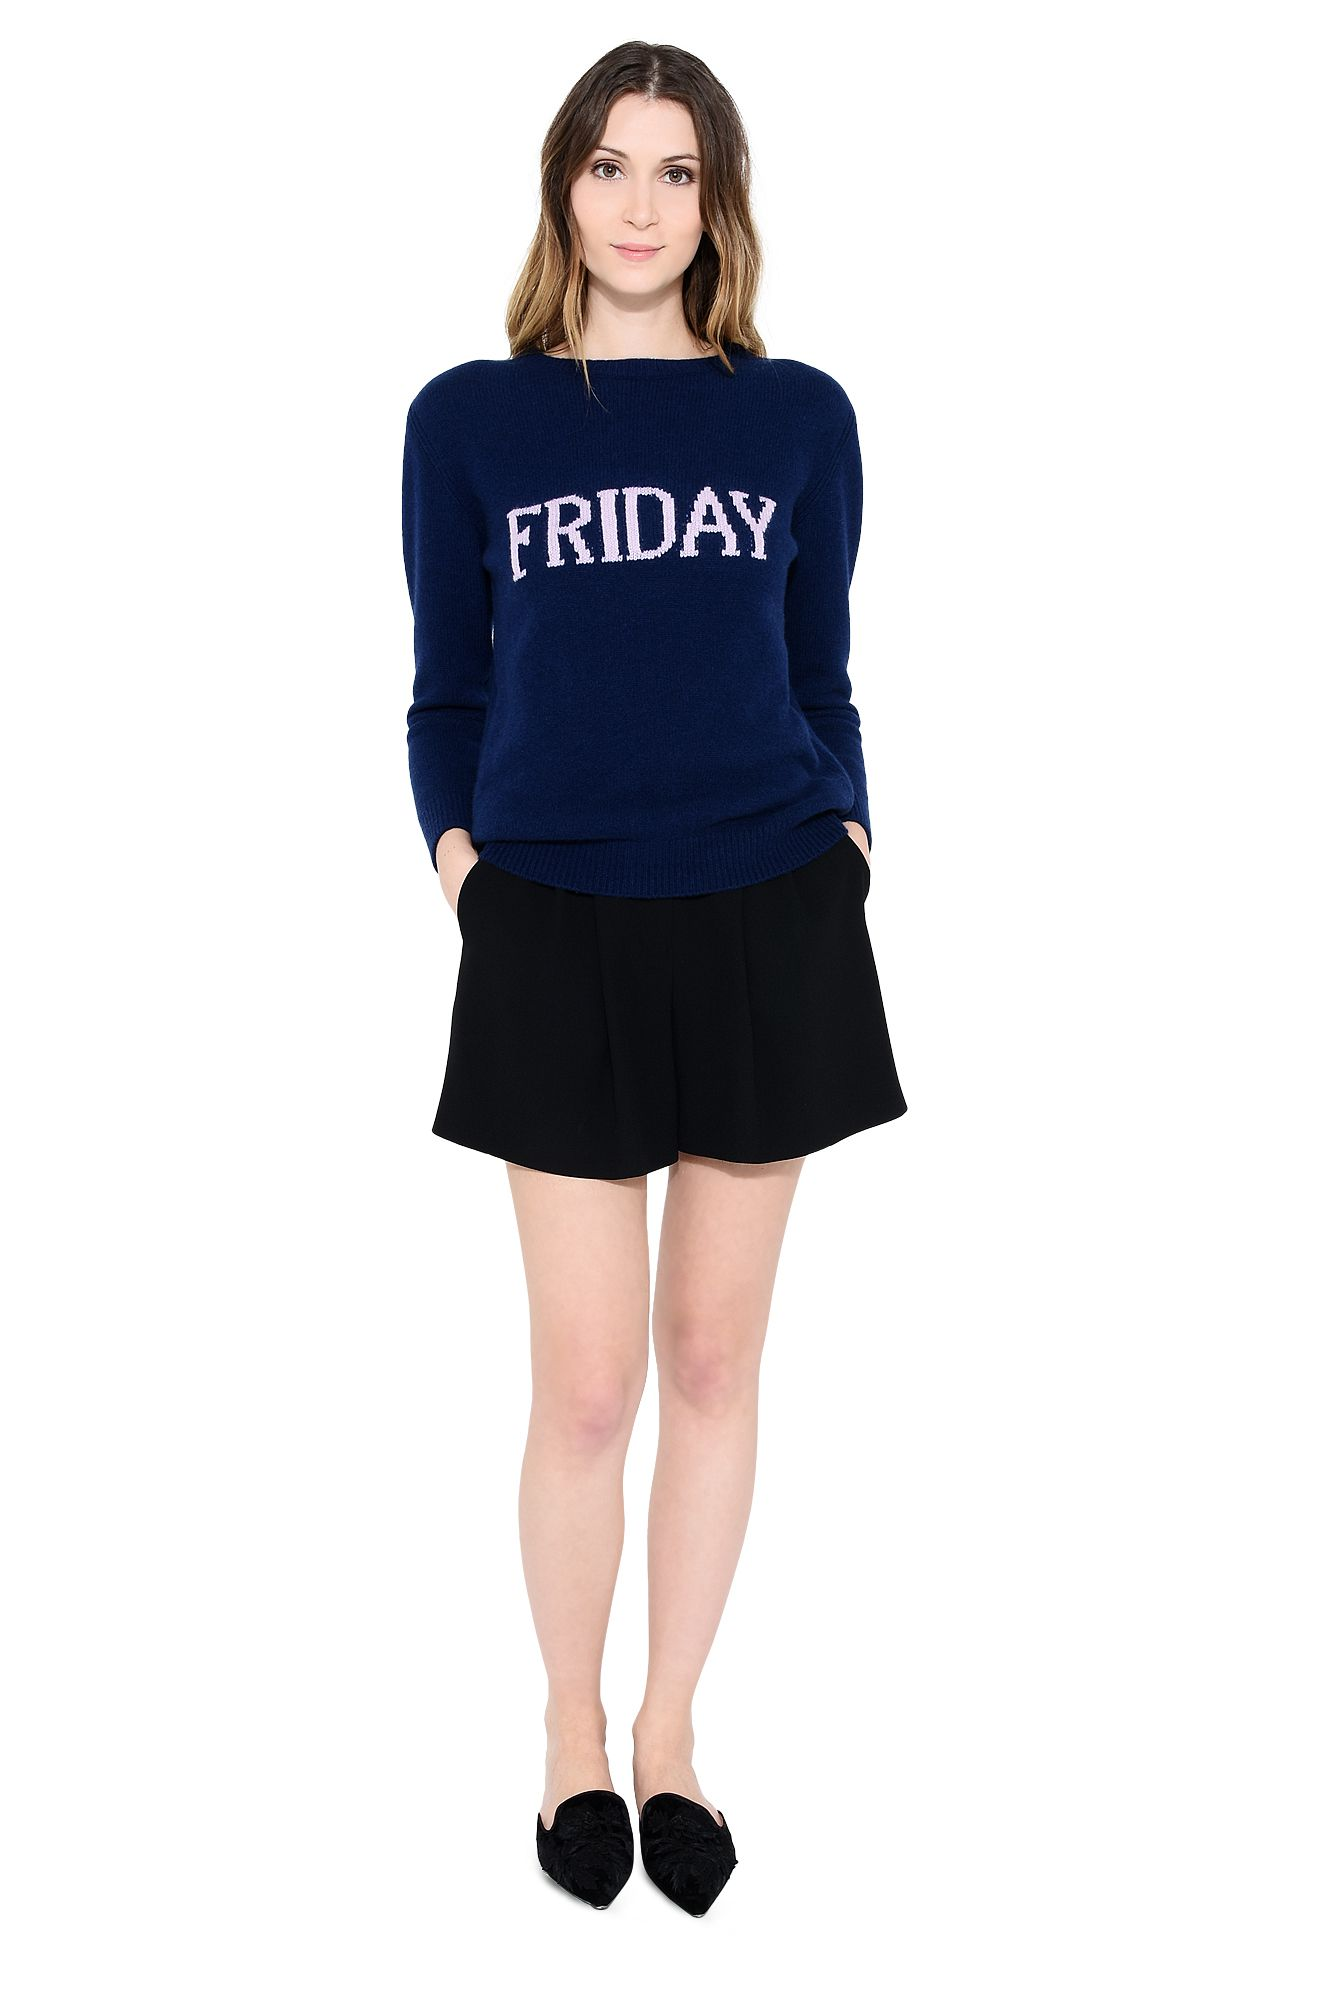 FRIDAY IN BLUE